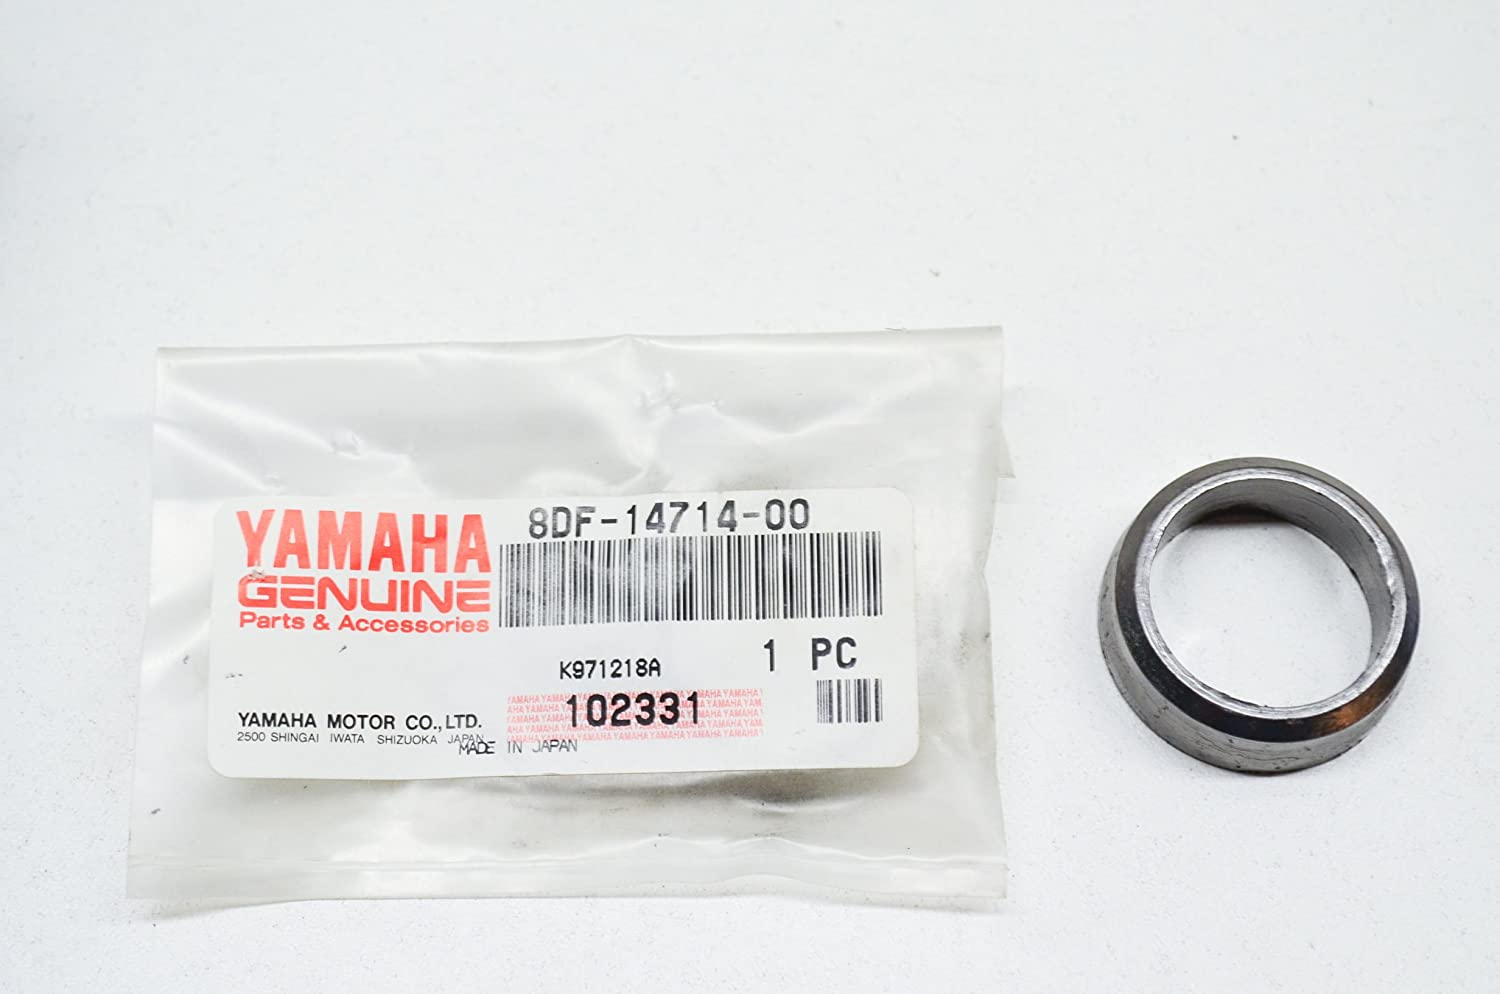 Muffler; 8DF147140000 Made by Yamaha Yamaha 8DF-14714-00-00 Gasket